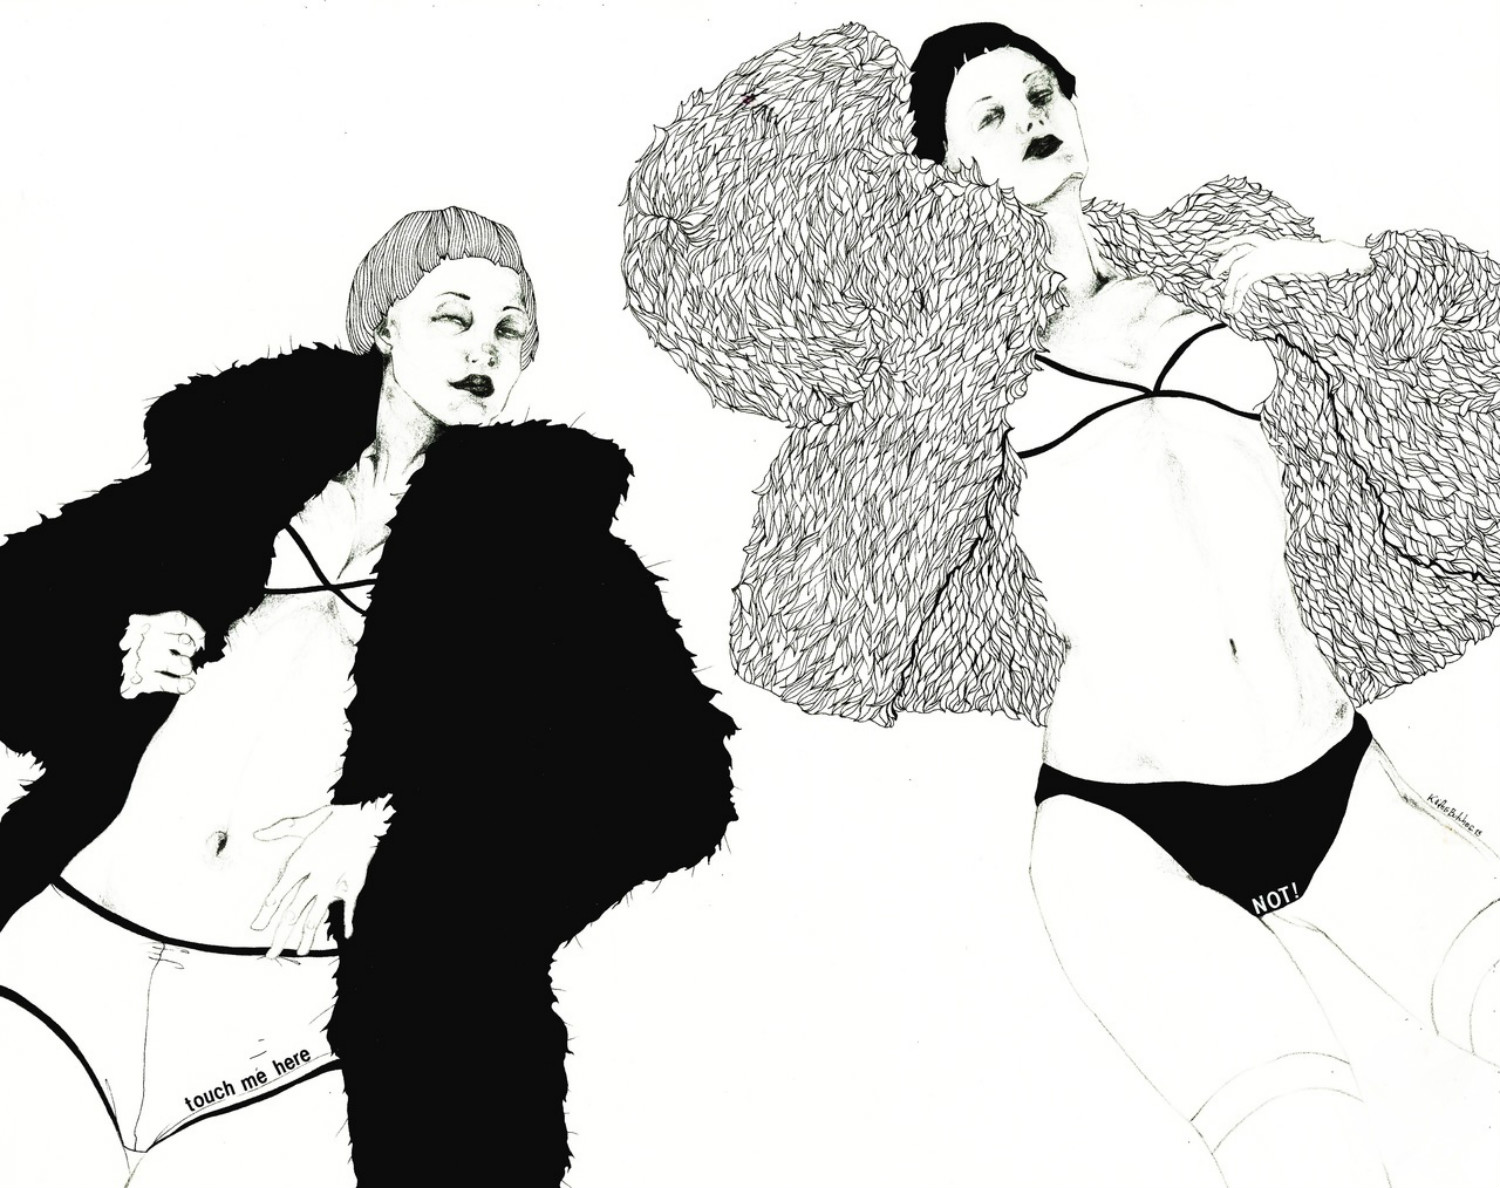 kaethe butcher illustration black white erotic nude